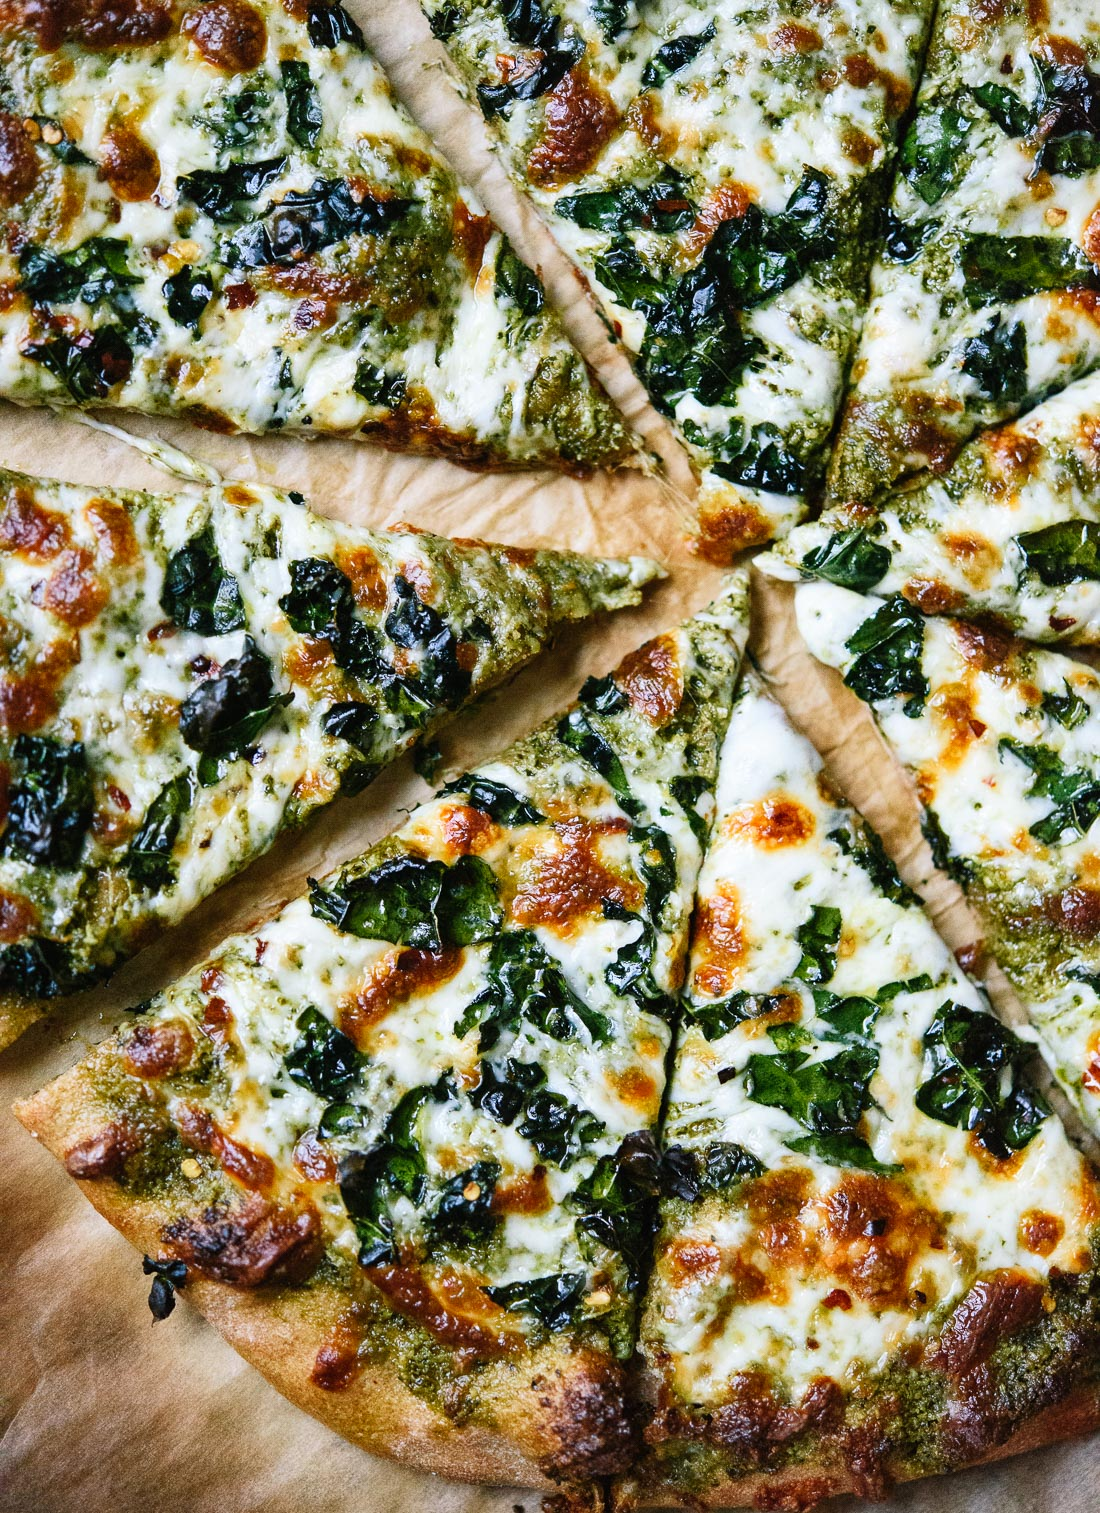 Kale Pesto Pizza